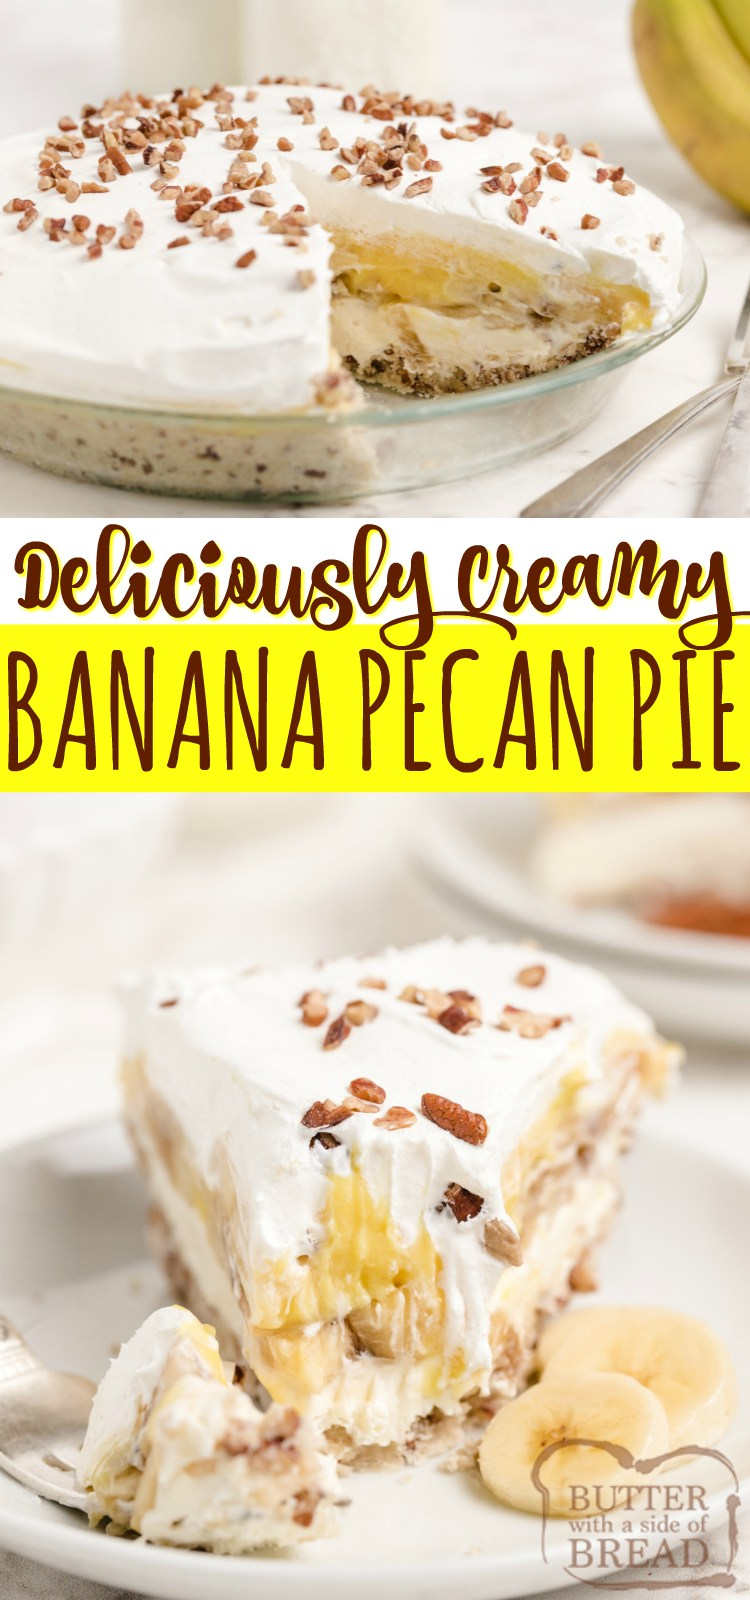 Creamy Banana Pecan Pie combines two classic pies into one delicious dessert! This simple banana pie recipe is made in a pecan crust, with fresh bananas sandwiched between two creamy layers.